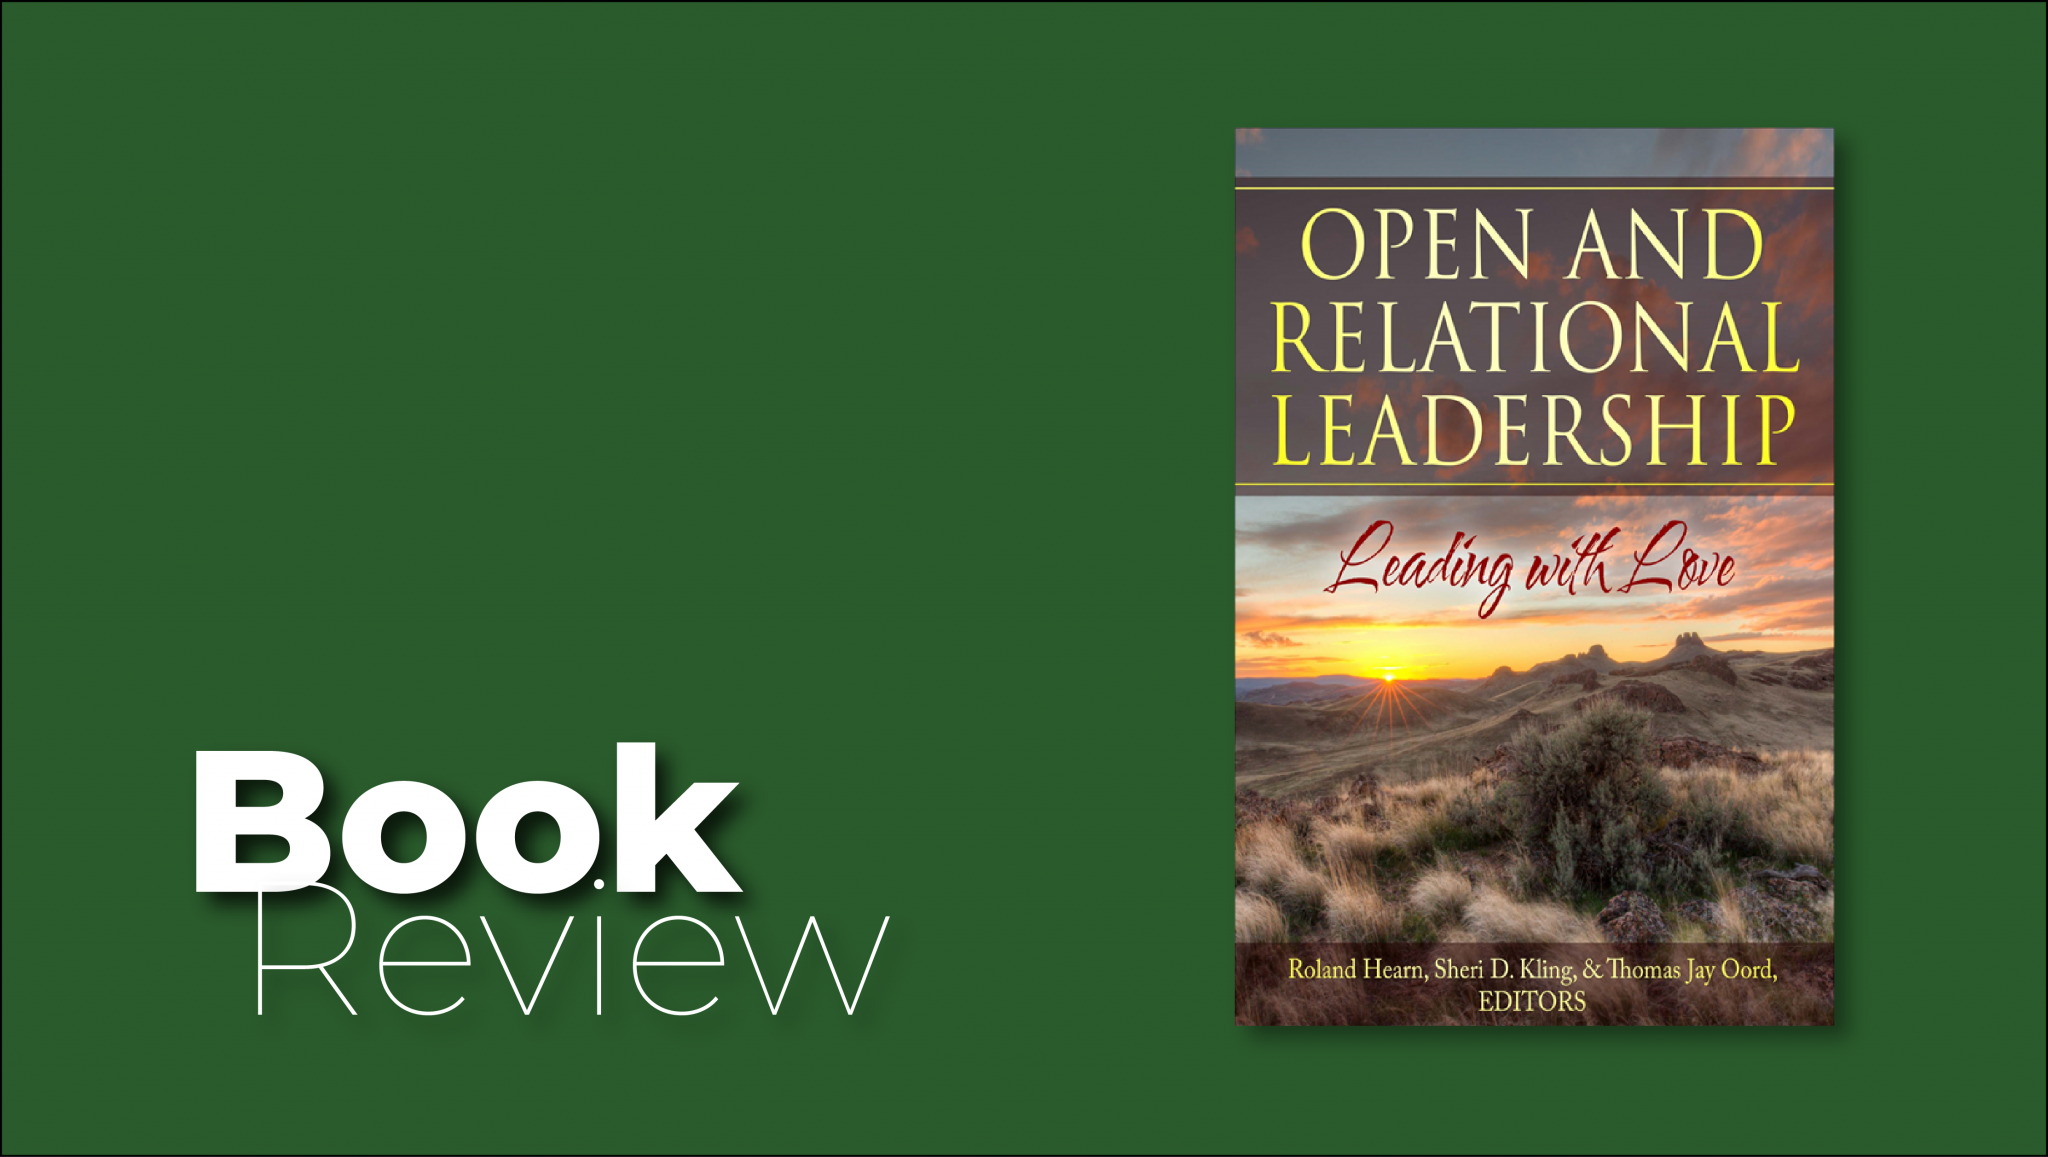 Book Review: Open and Relational Leadership